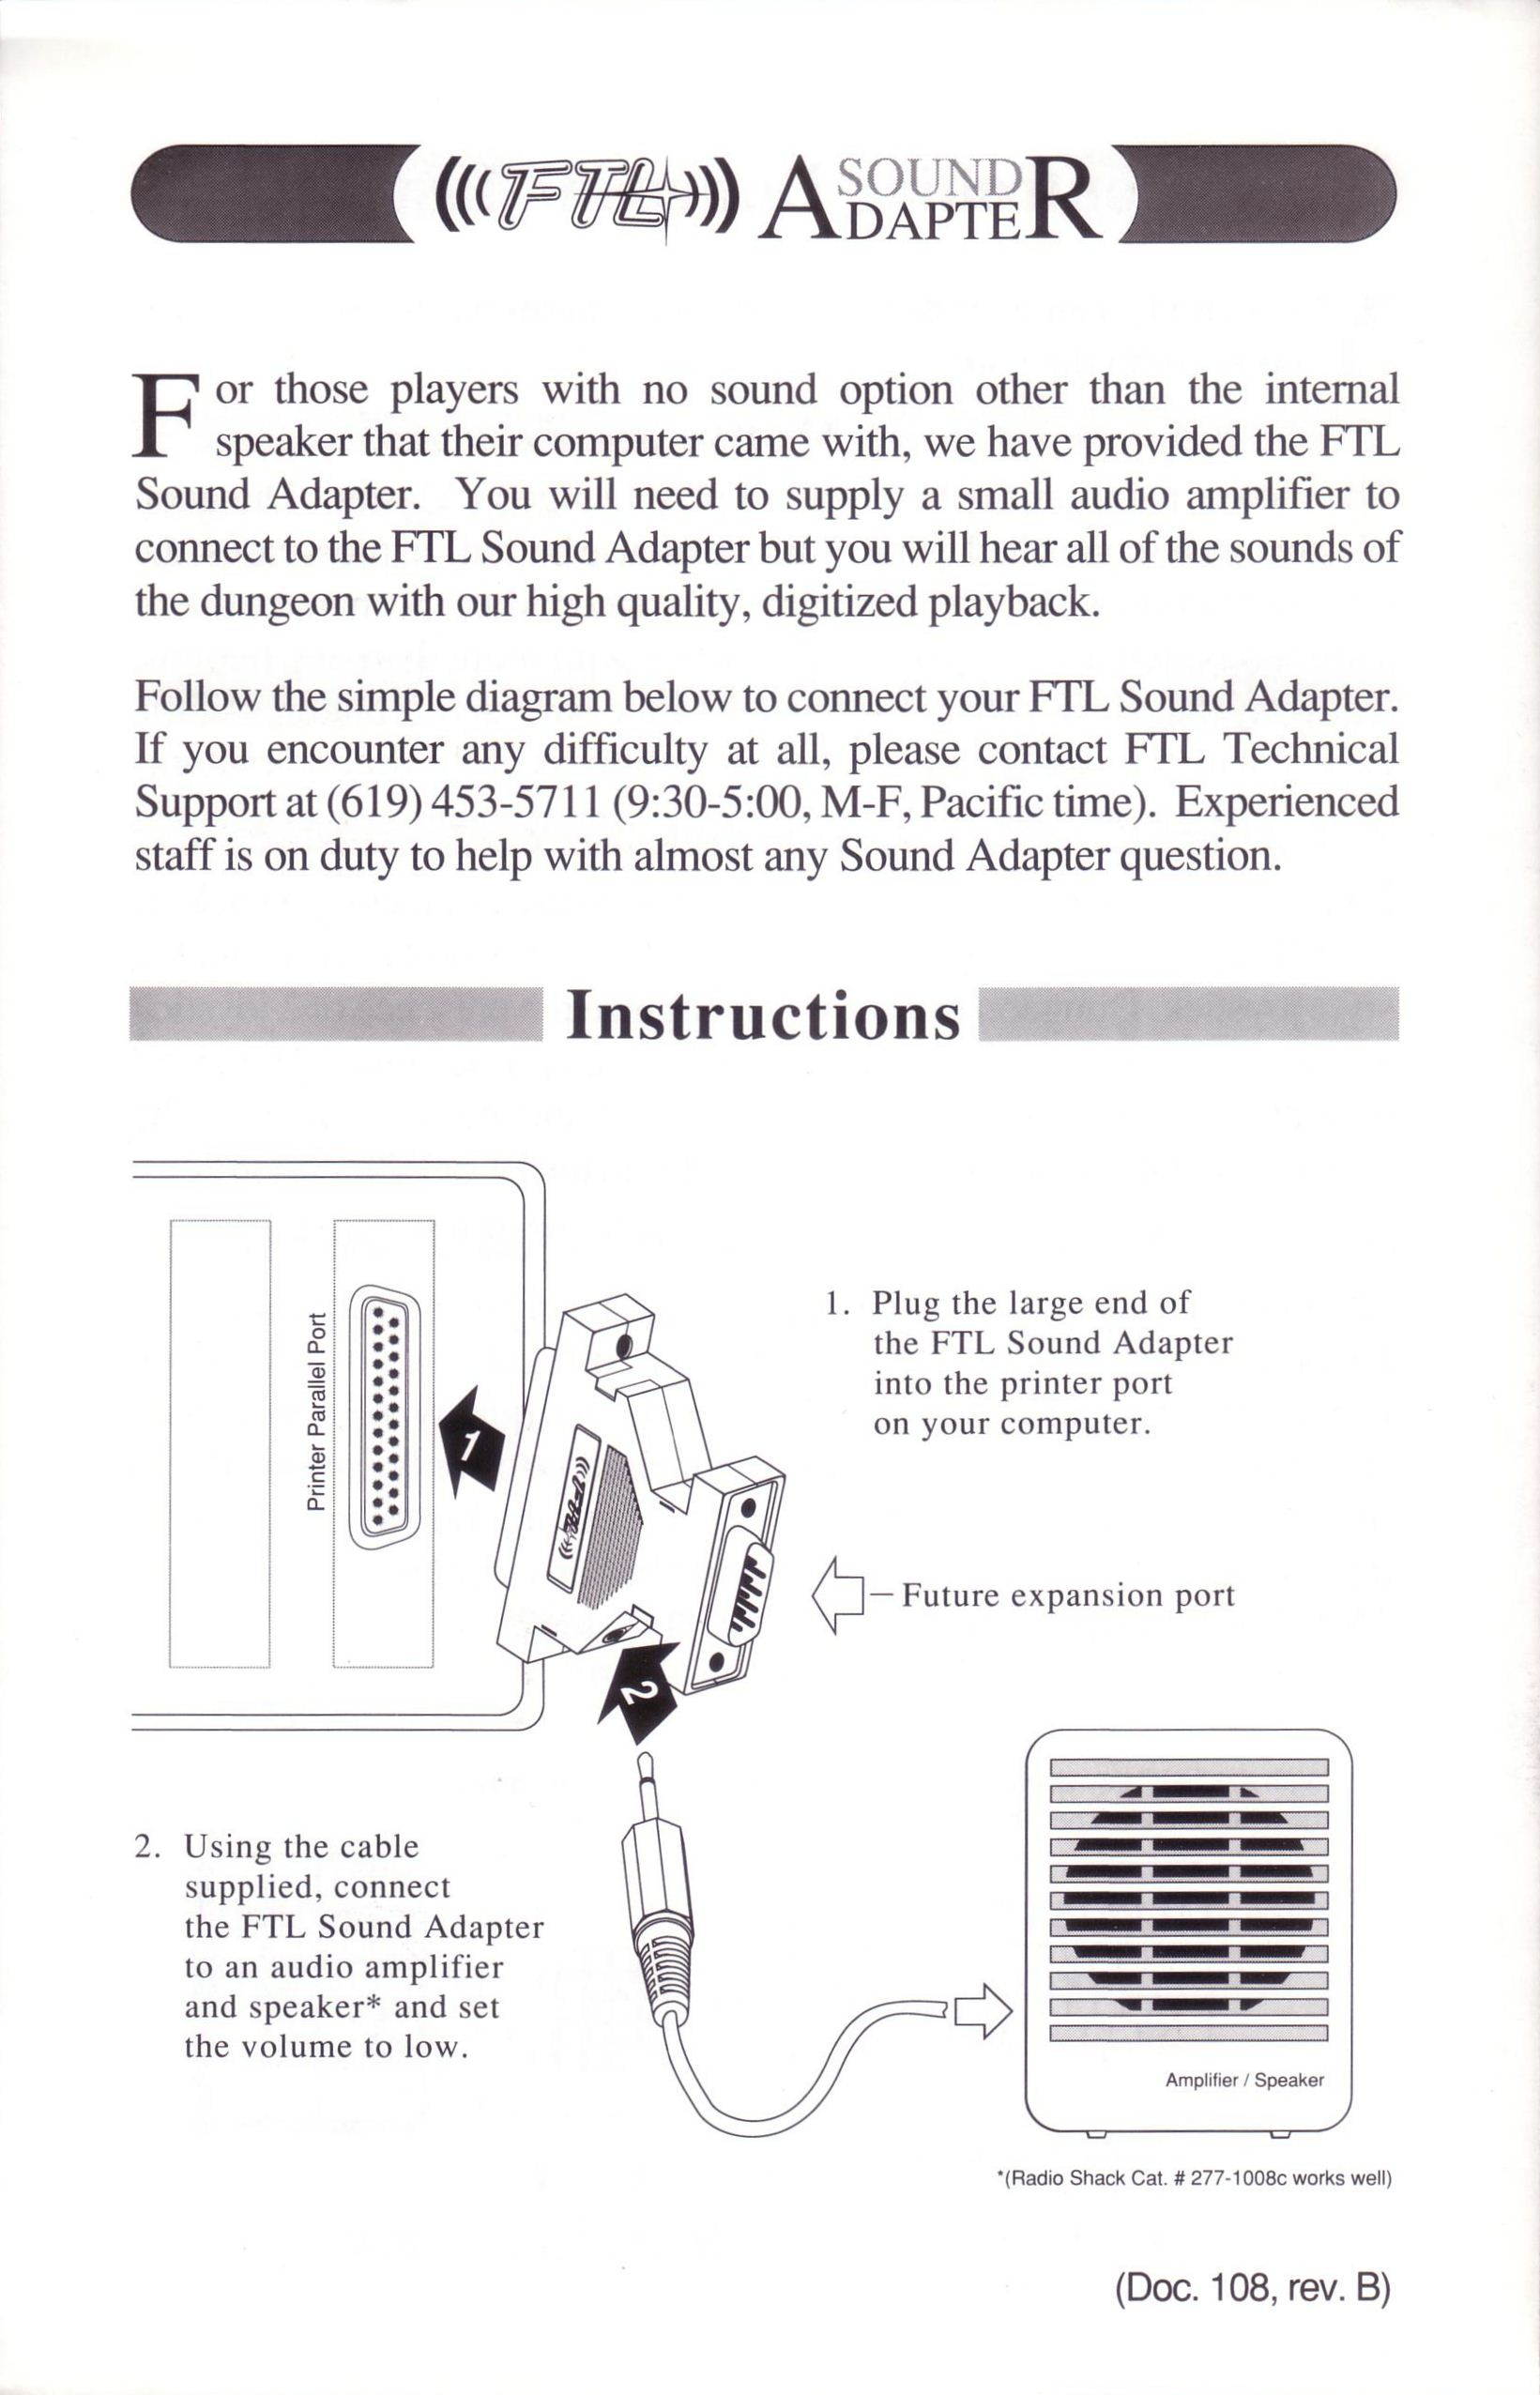 Dungeon Master for PC with FTL Sound Adapter (US Release) - Quick Start Guide Page 4